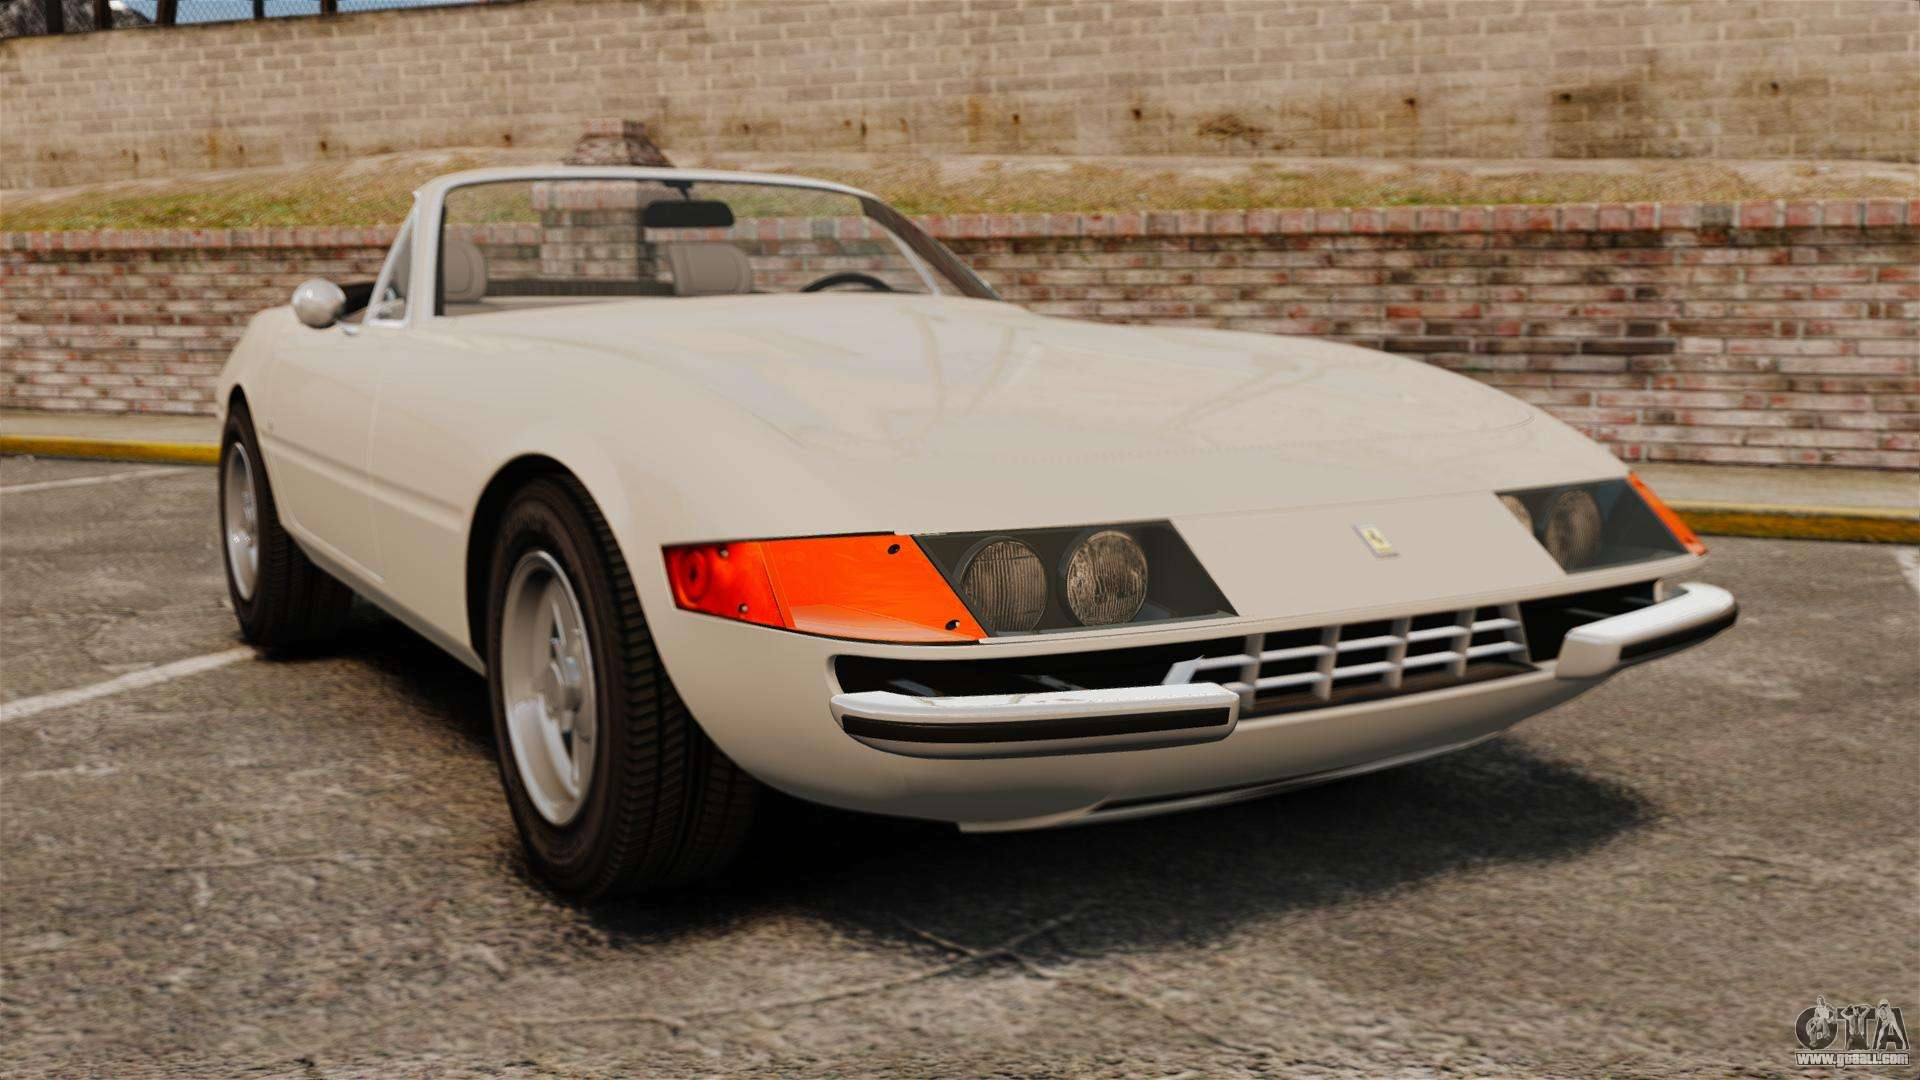 Gta 5 Cars Wallpaper Download Ferrari Daytona Spider For Gta 4